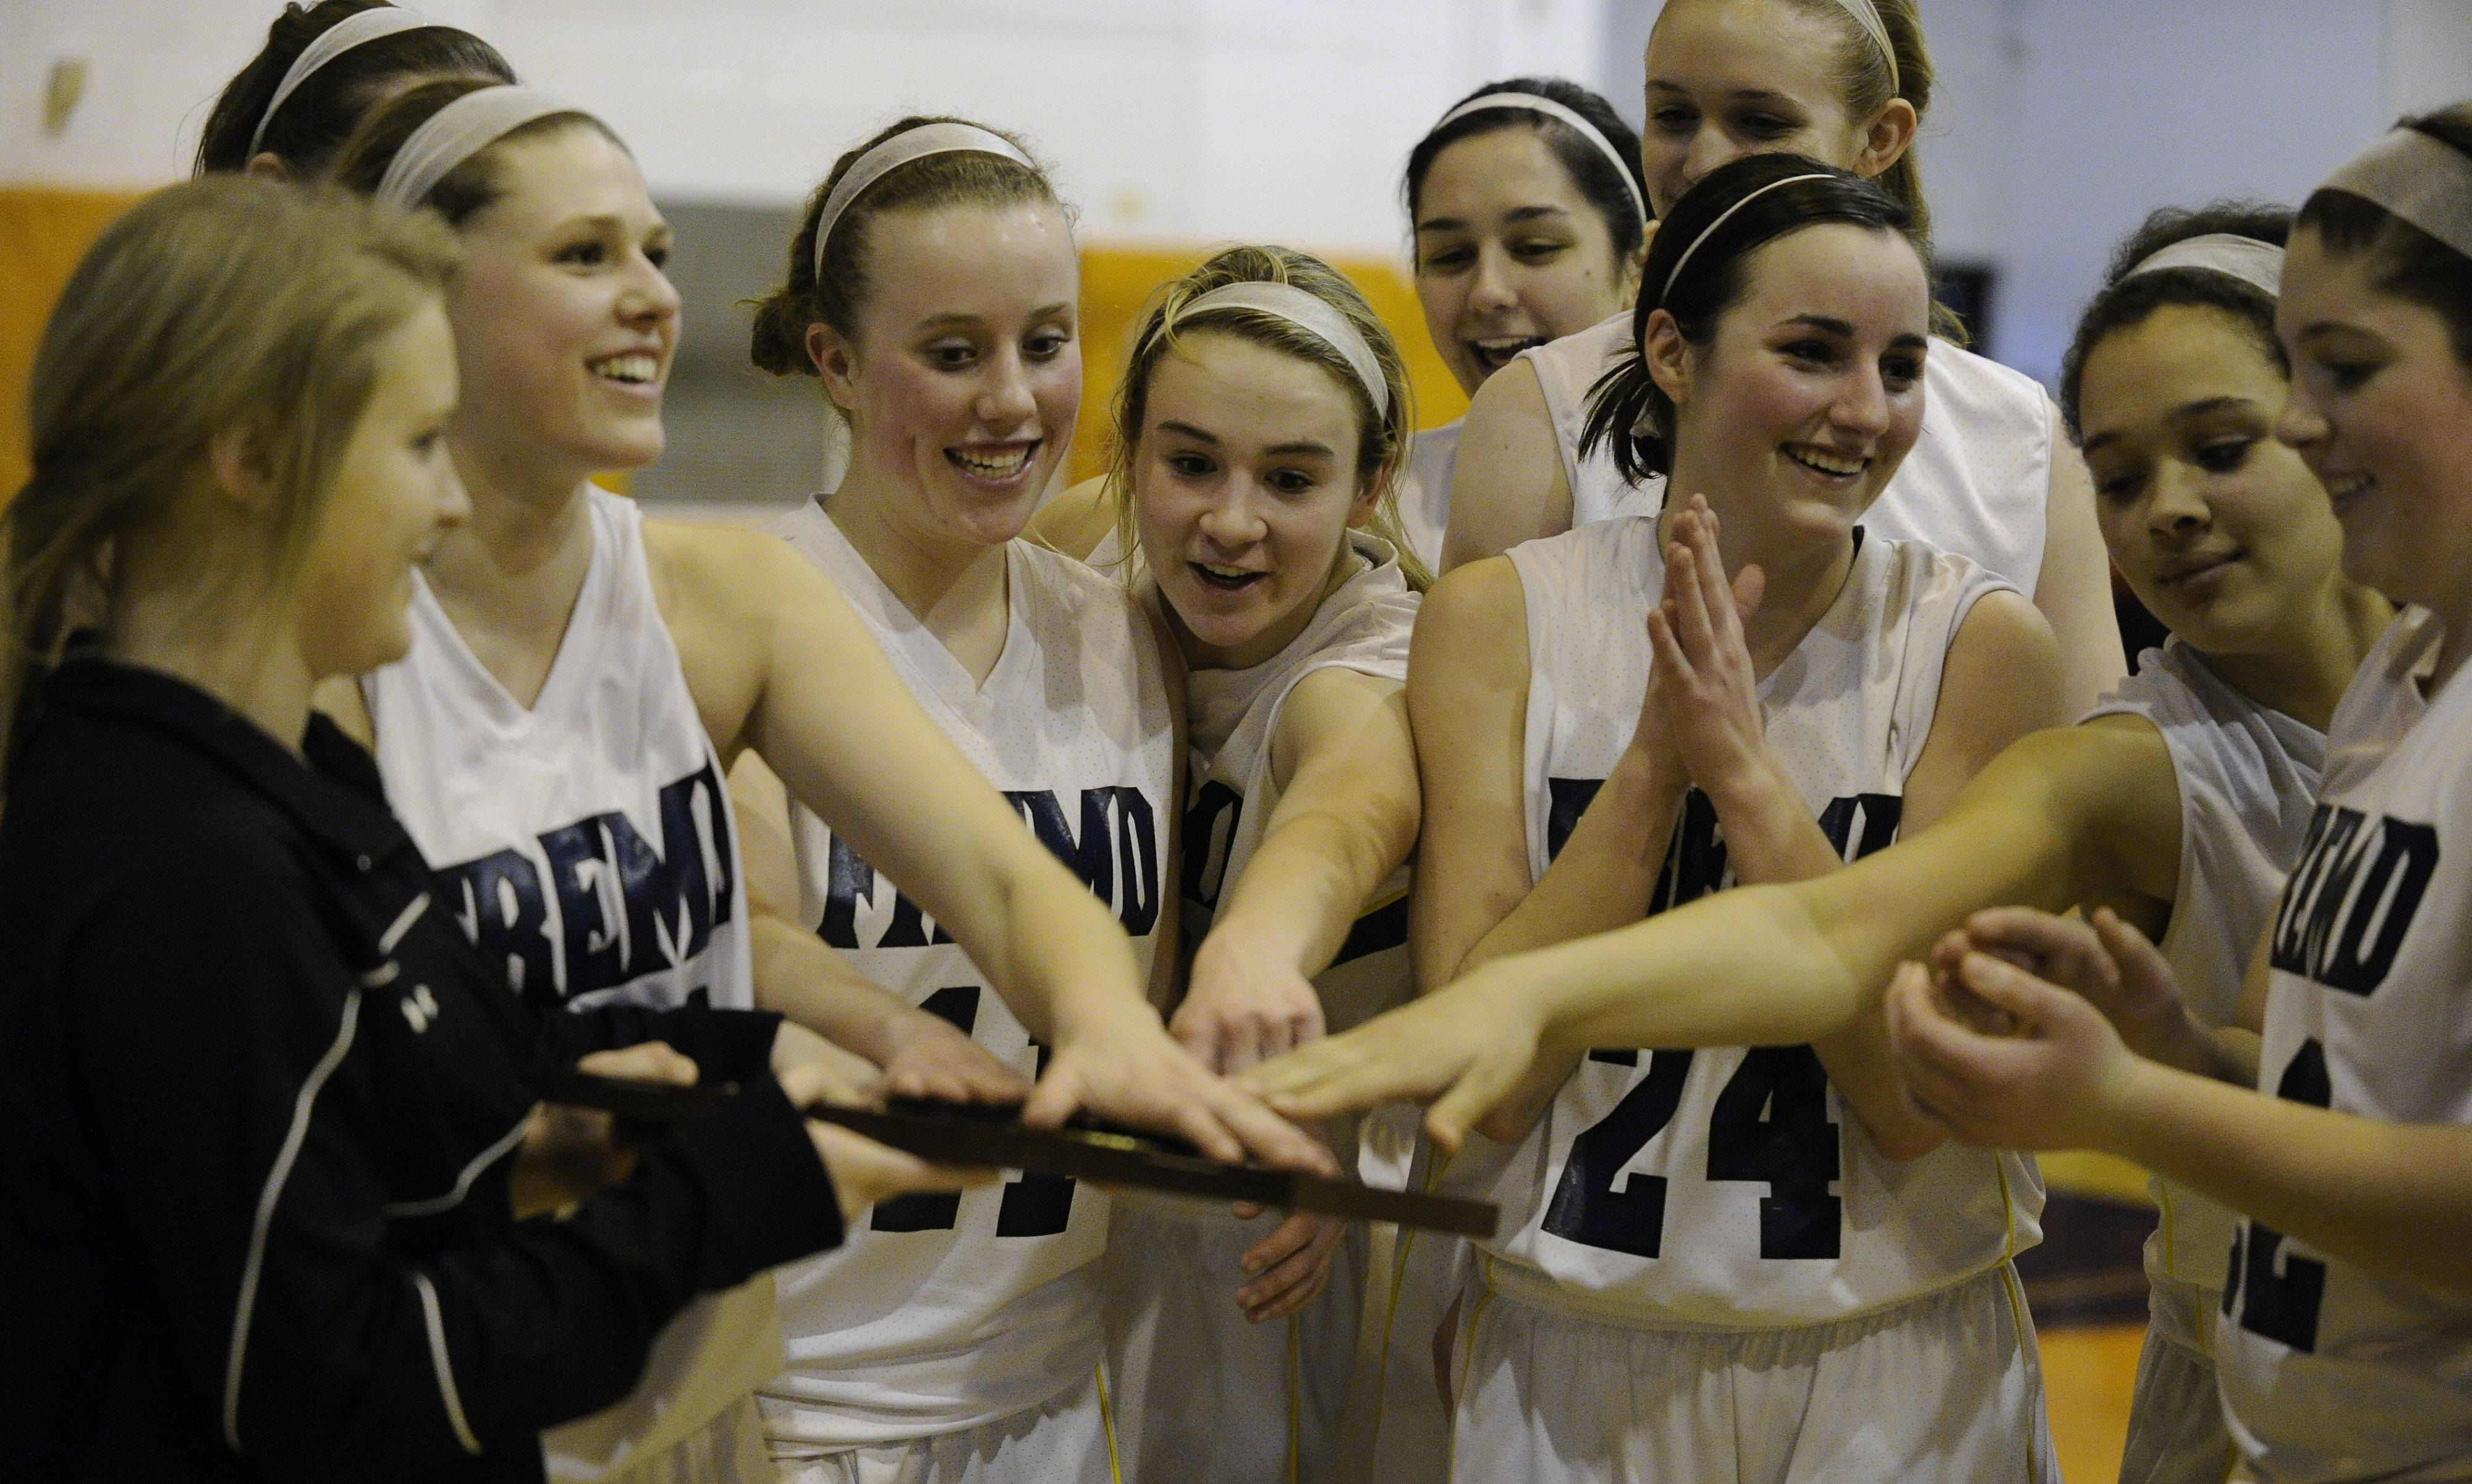 Images from the Buffalo Grove vs. Fremd girls regional championship basketball game in Buffalo Grove on Thursday, February 17th.